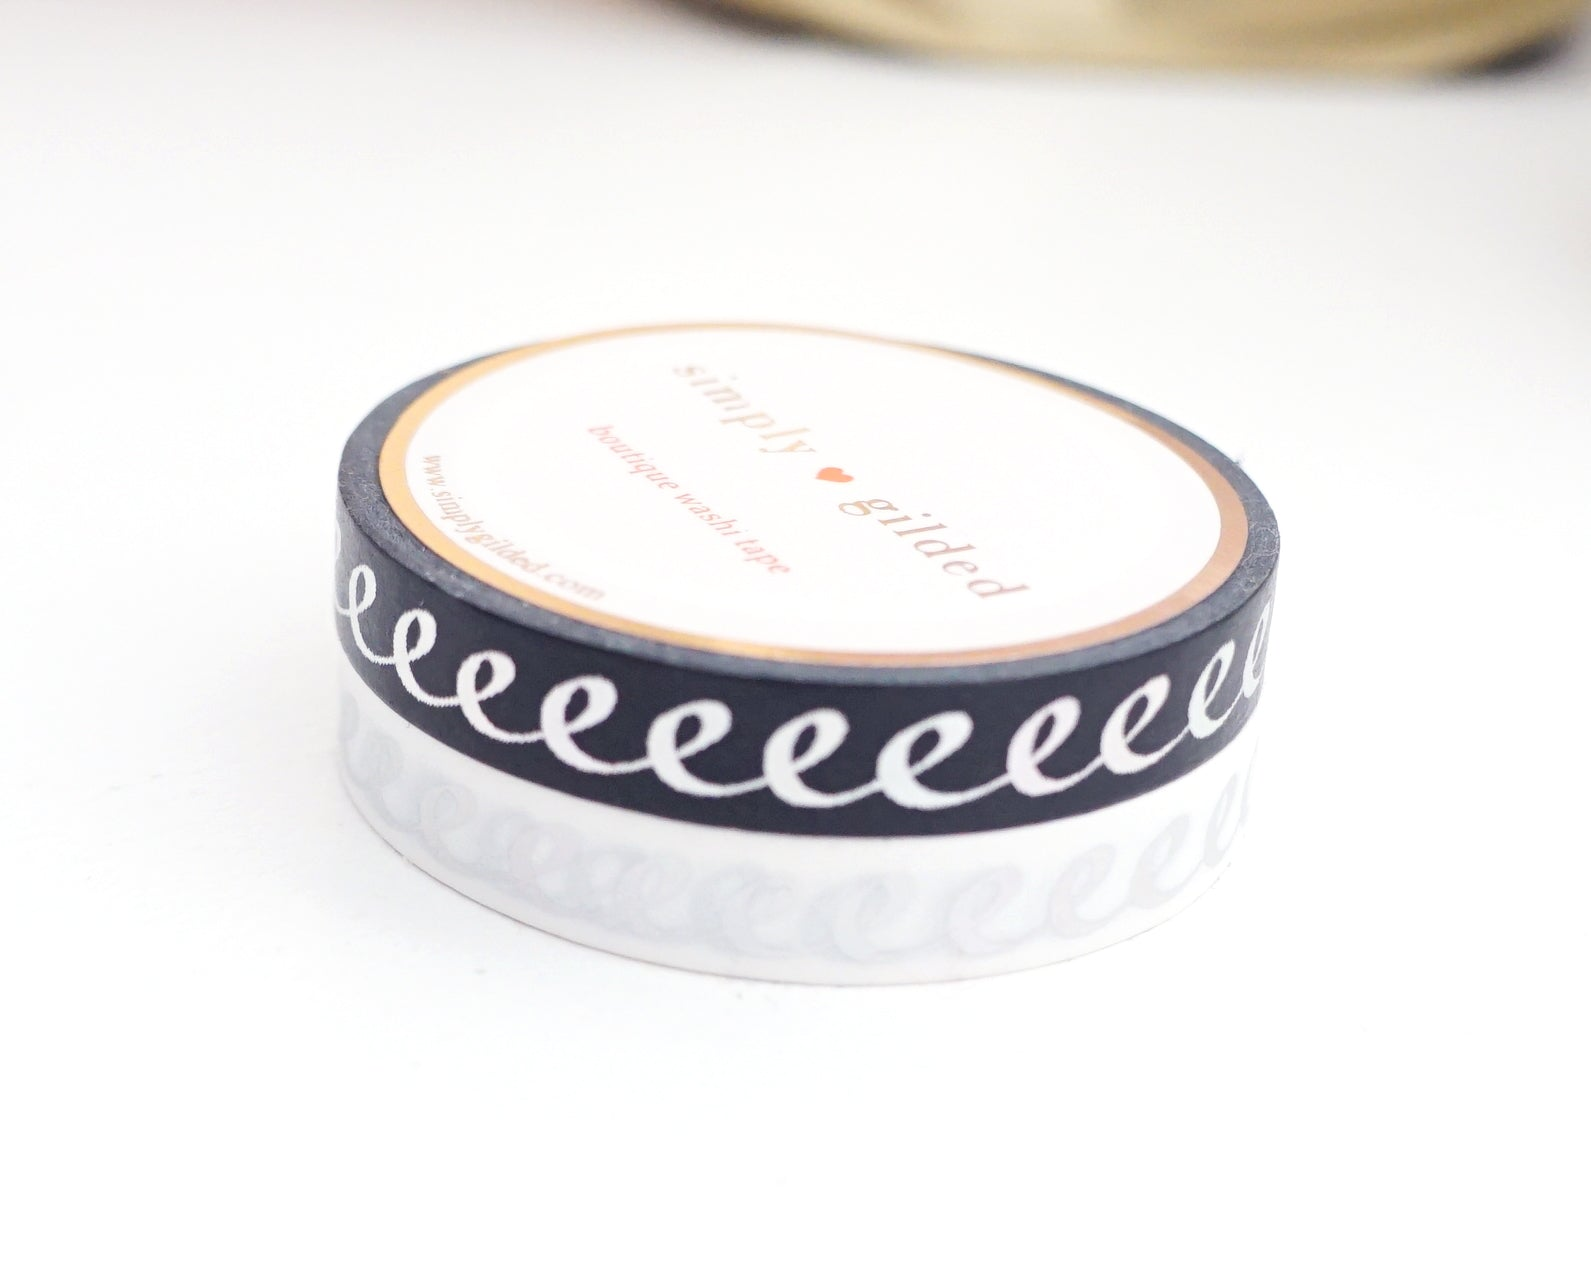 WASHI TAPE 7.5mm set of 2 - BLACK & White ICING + holographic silver foil (New Release)